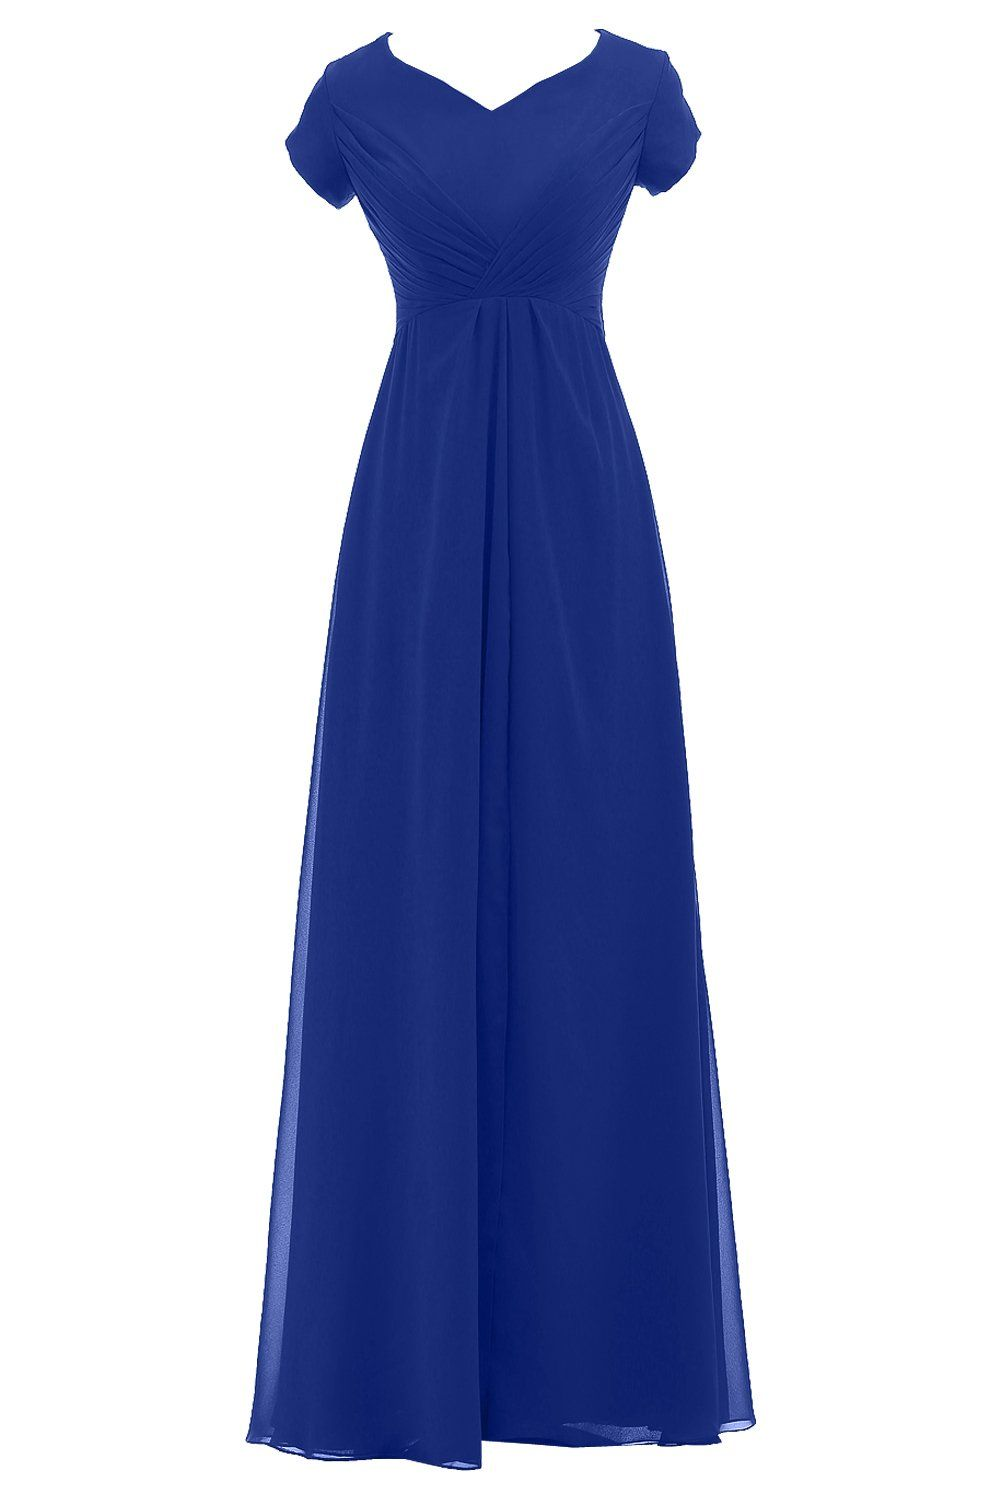 Sunvary woman vintage long chiffon mother of the bride dresses with